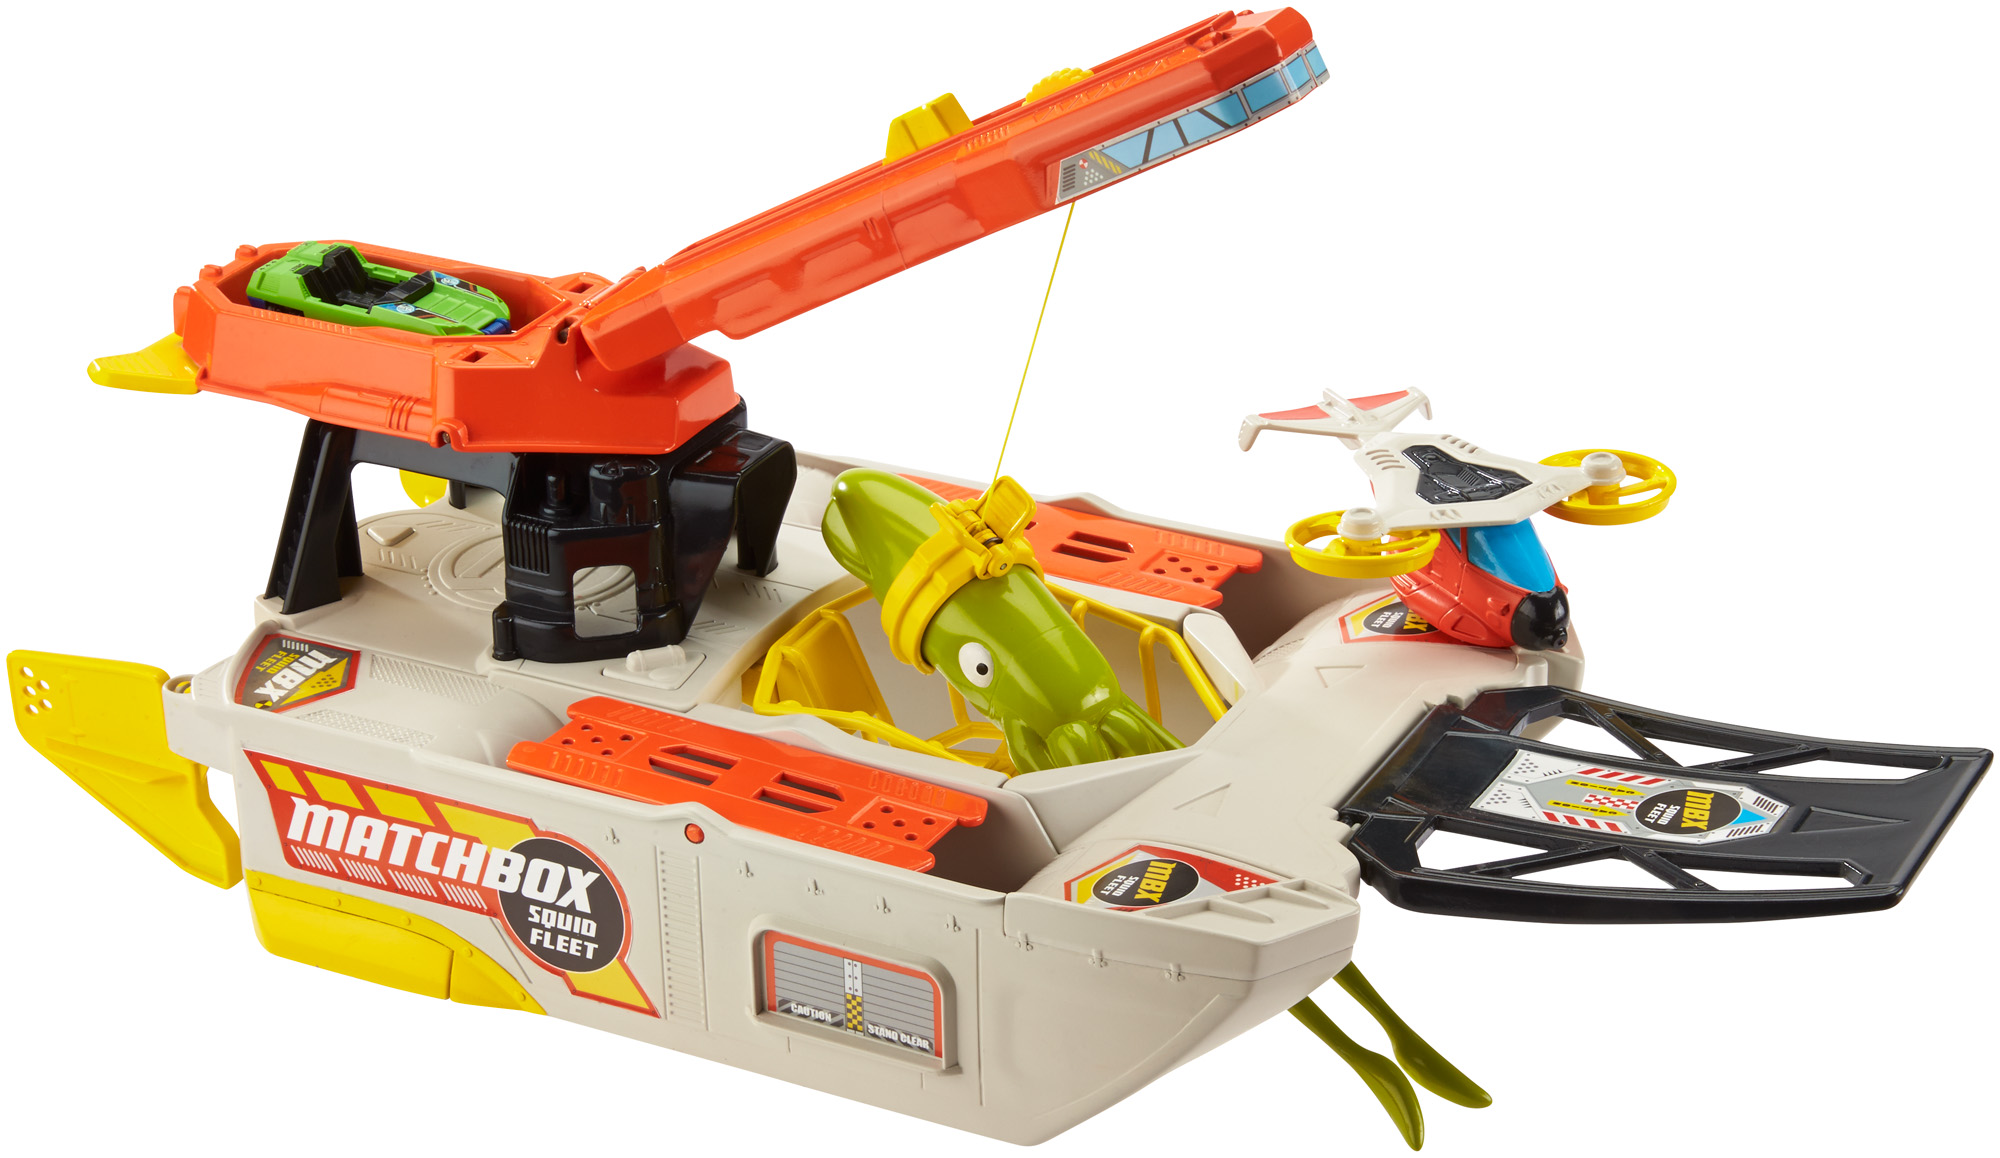 Matchbox Squid Fleet Ship Rescue Action Play with Car by Mattel